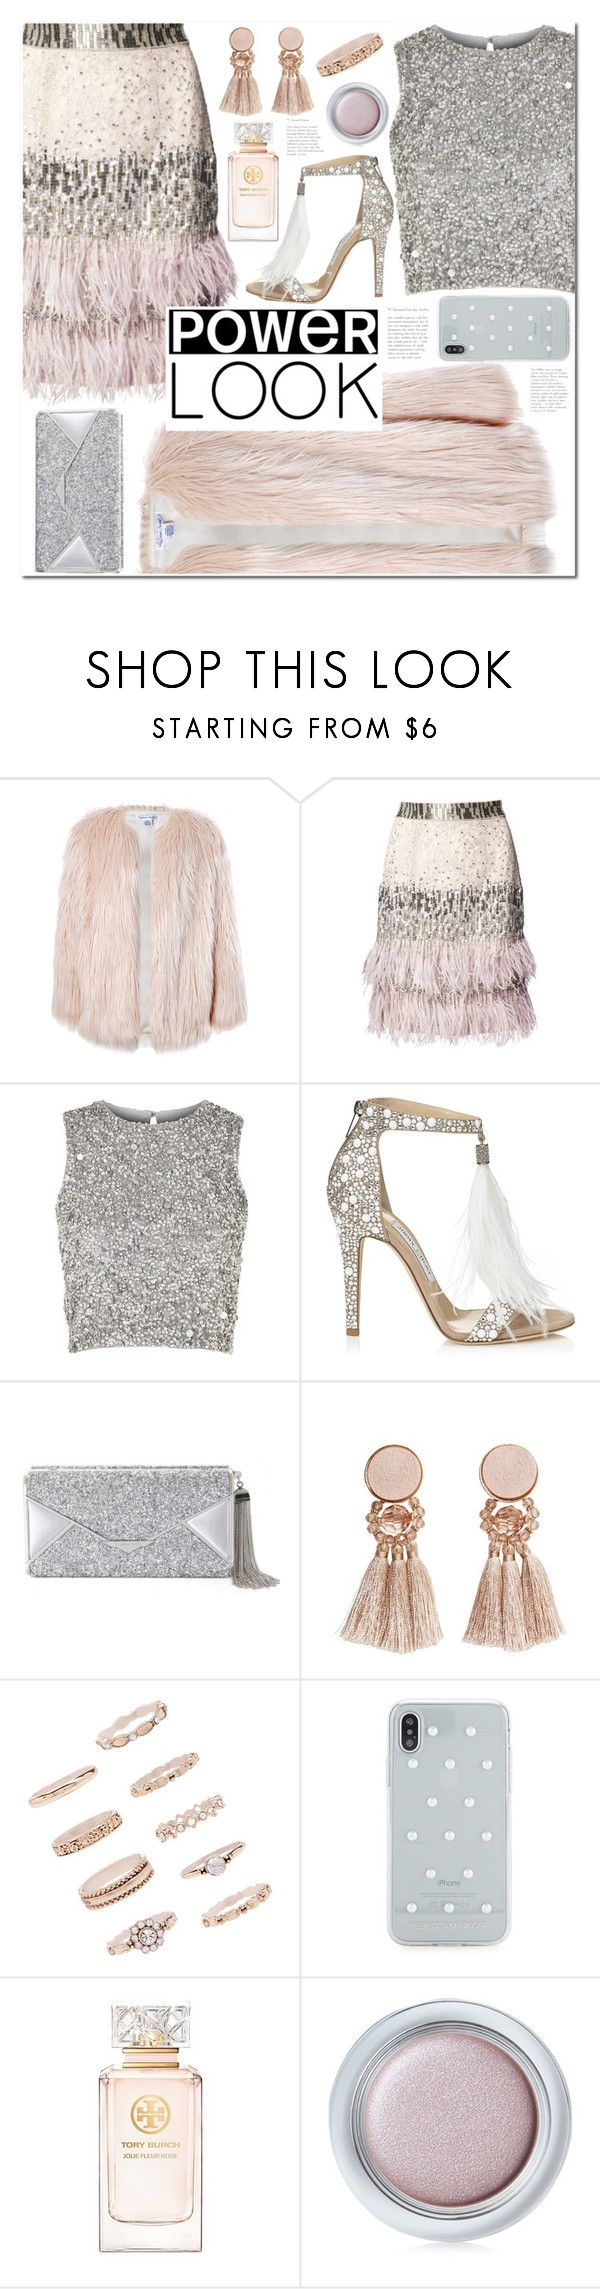 """""""Power look"""" by alexa-girl2 ❤ liked on Polyvore featuring Sans Souci, Matthew Williamson, Lace & Beads, Jimmy Choo, BCBGMAXAZRIA, MANGO, Forever 21, Rebecca Minkoff, Tory Burch and Shiseido"""